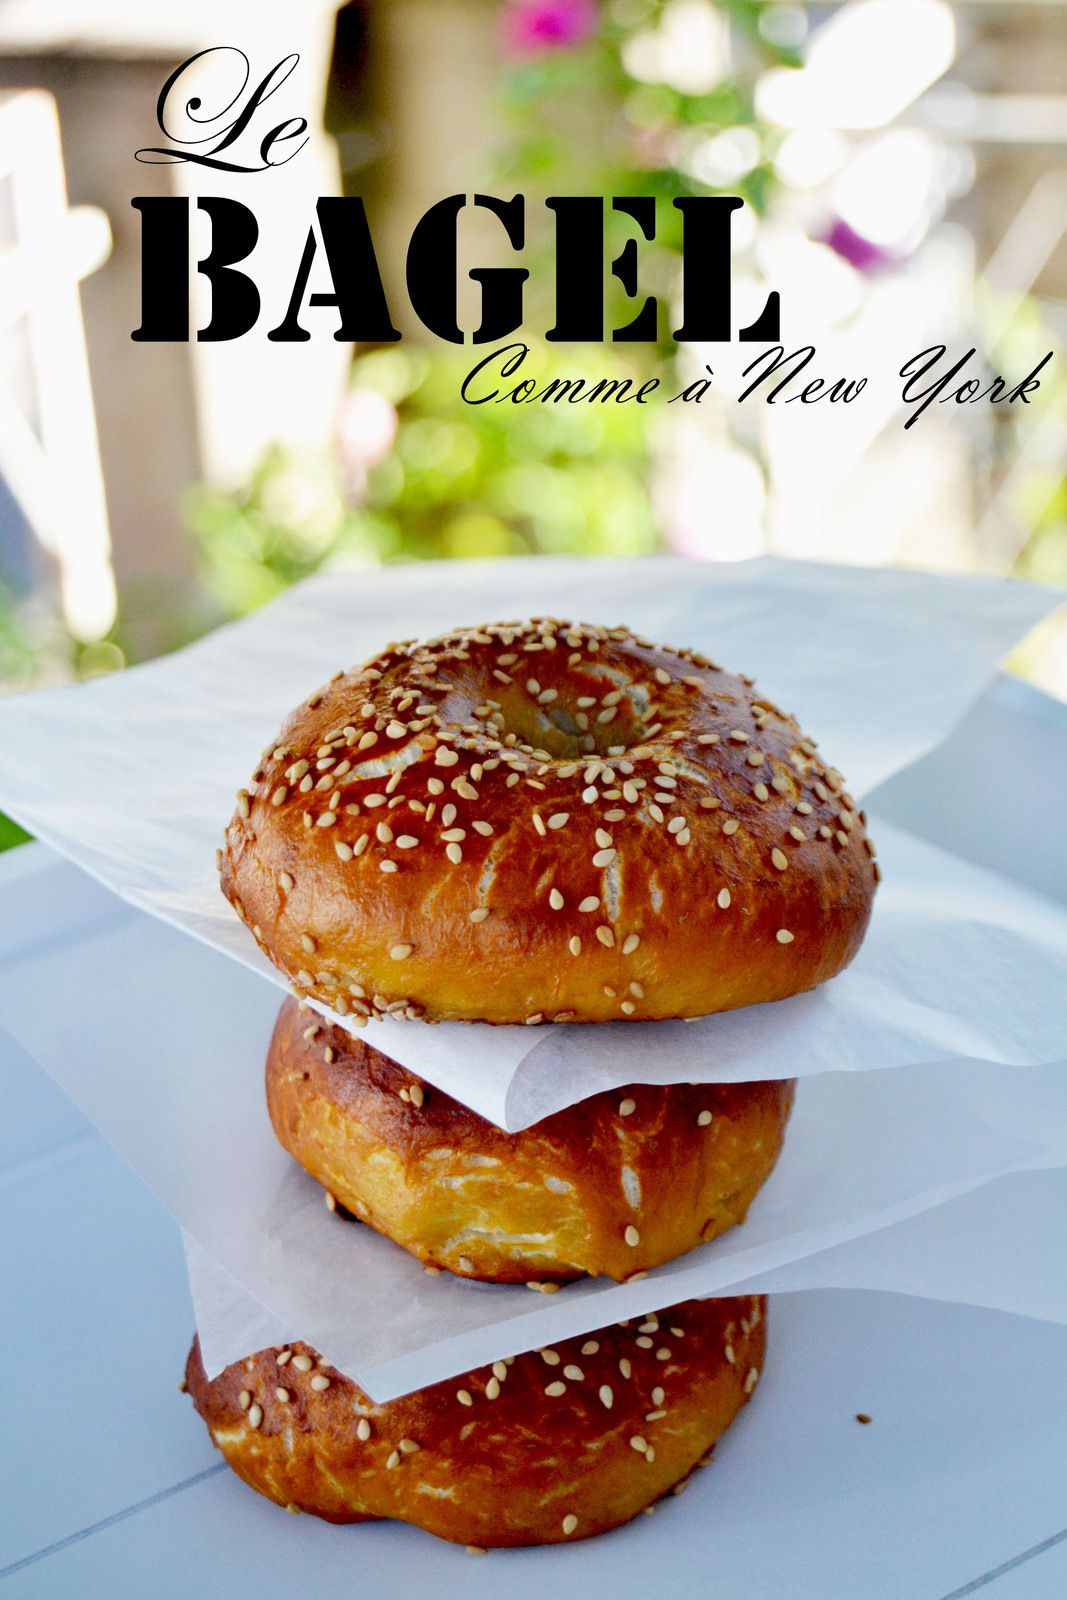 Bagel comme à New York